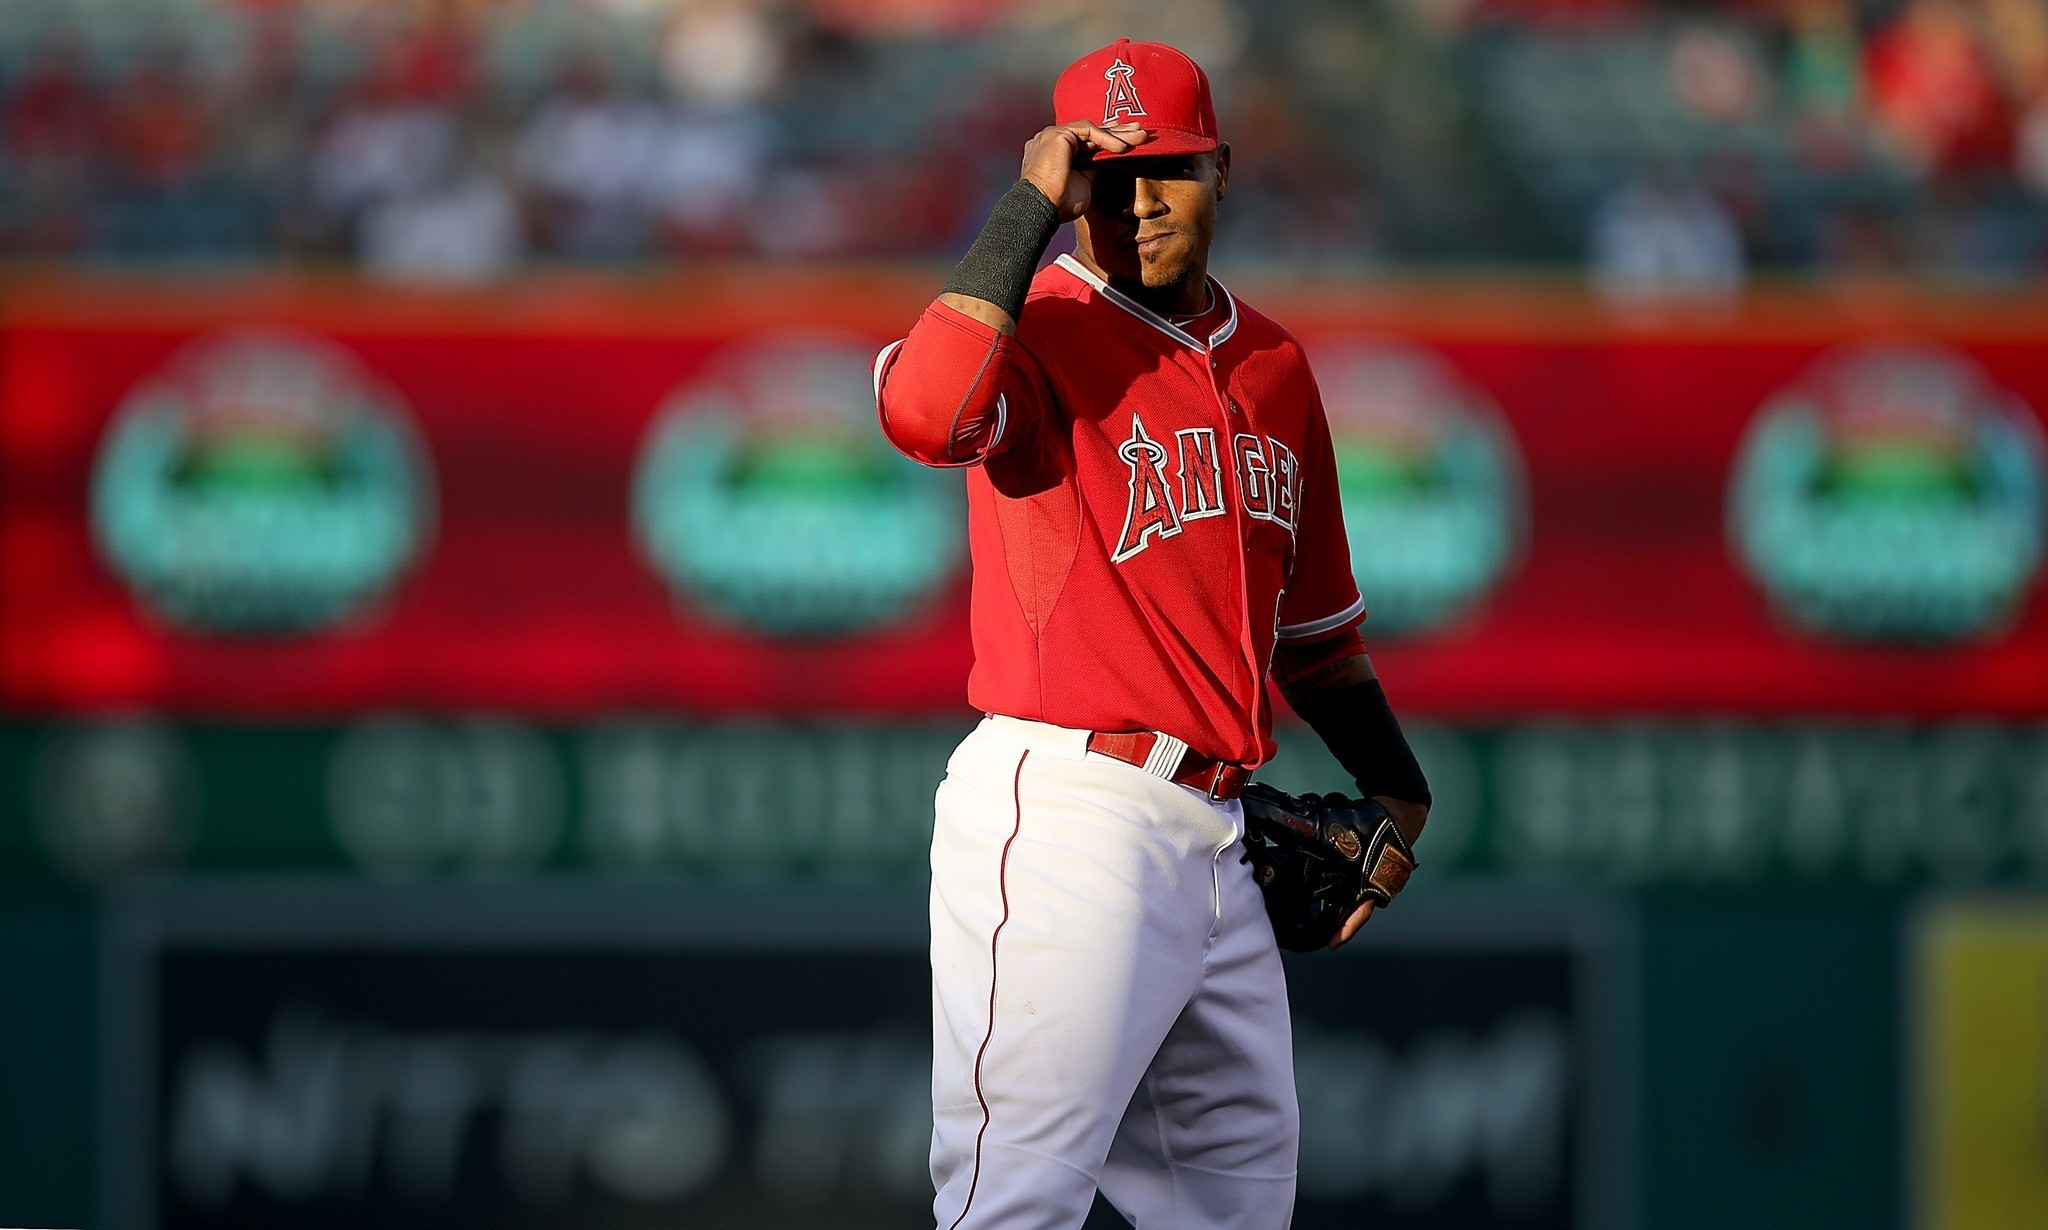 Angels' Erick Aybar added to All-Star team as an injury replacement